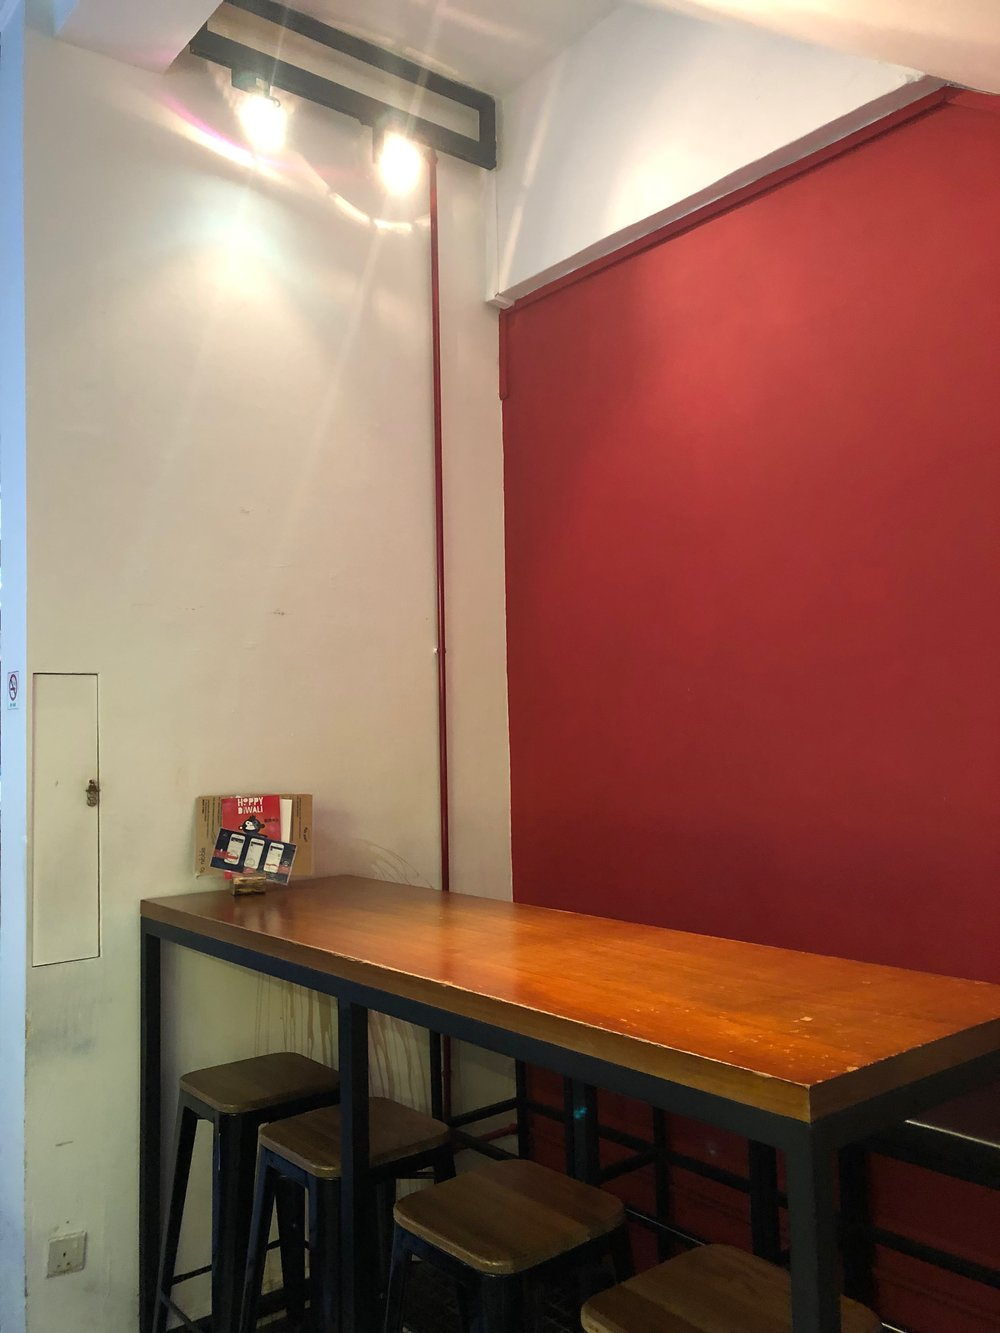 The two blank walls as they previously were…